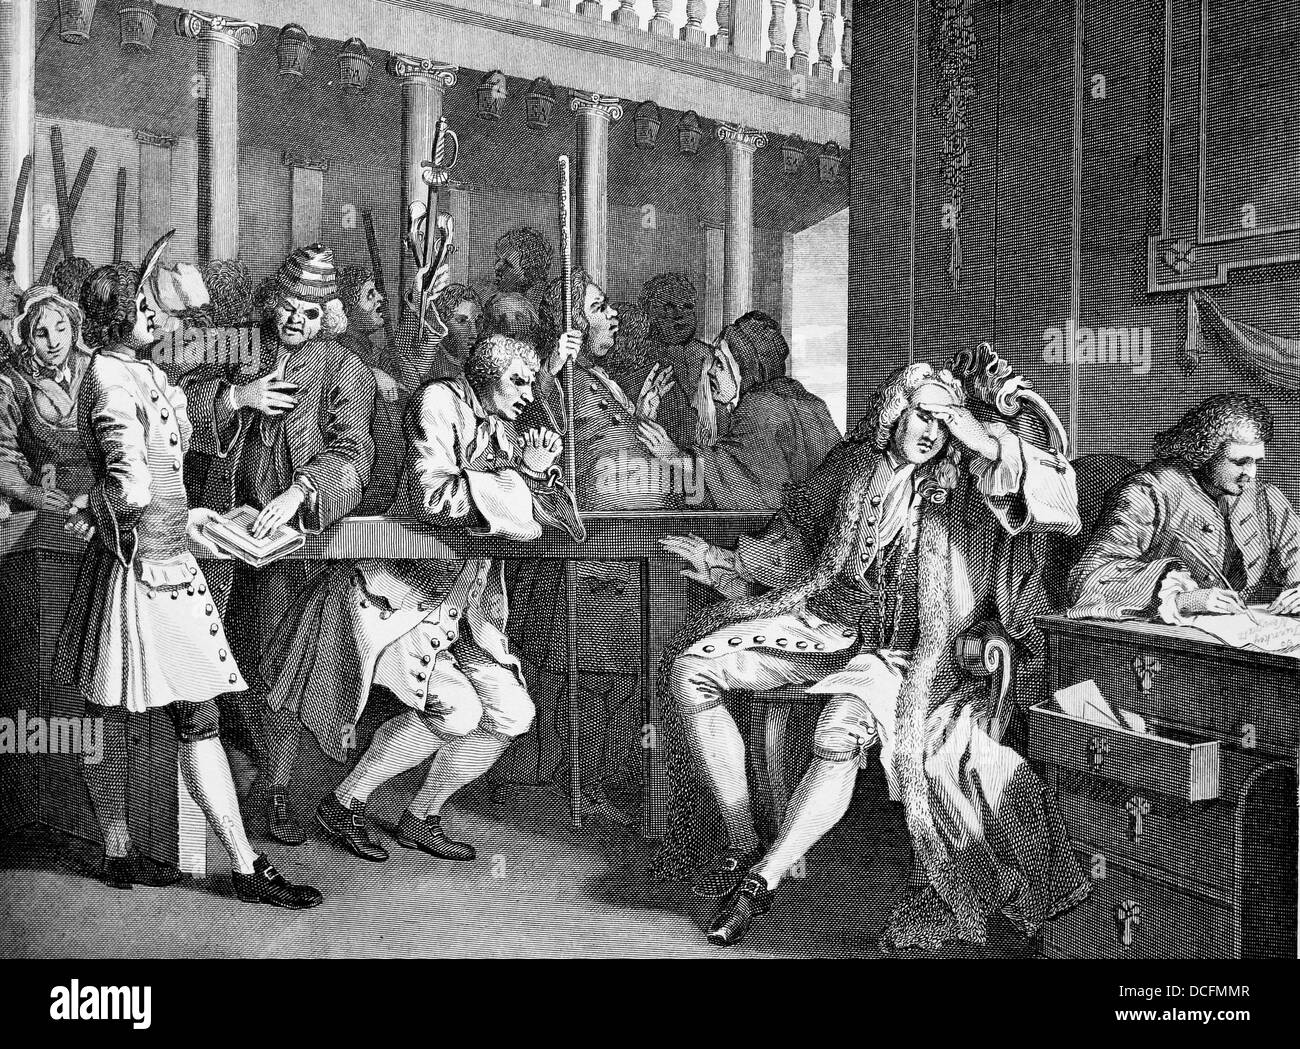 Industry And Idleness, The Industrious Prentice, Plate 10.From the original works by William Hogarth. Stock Photo